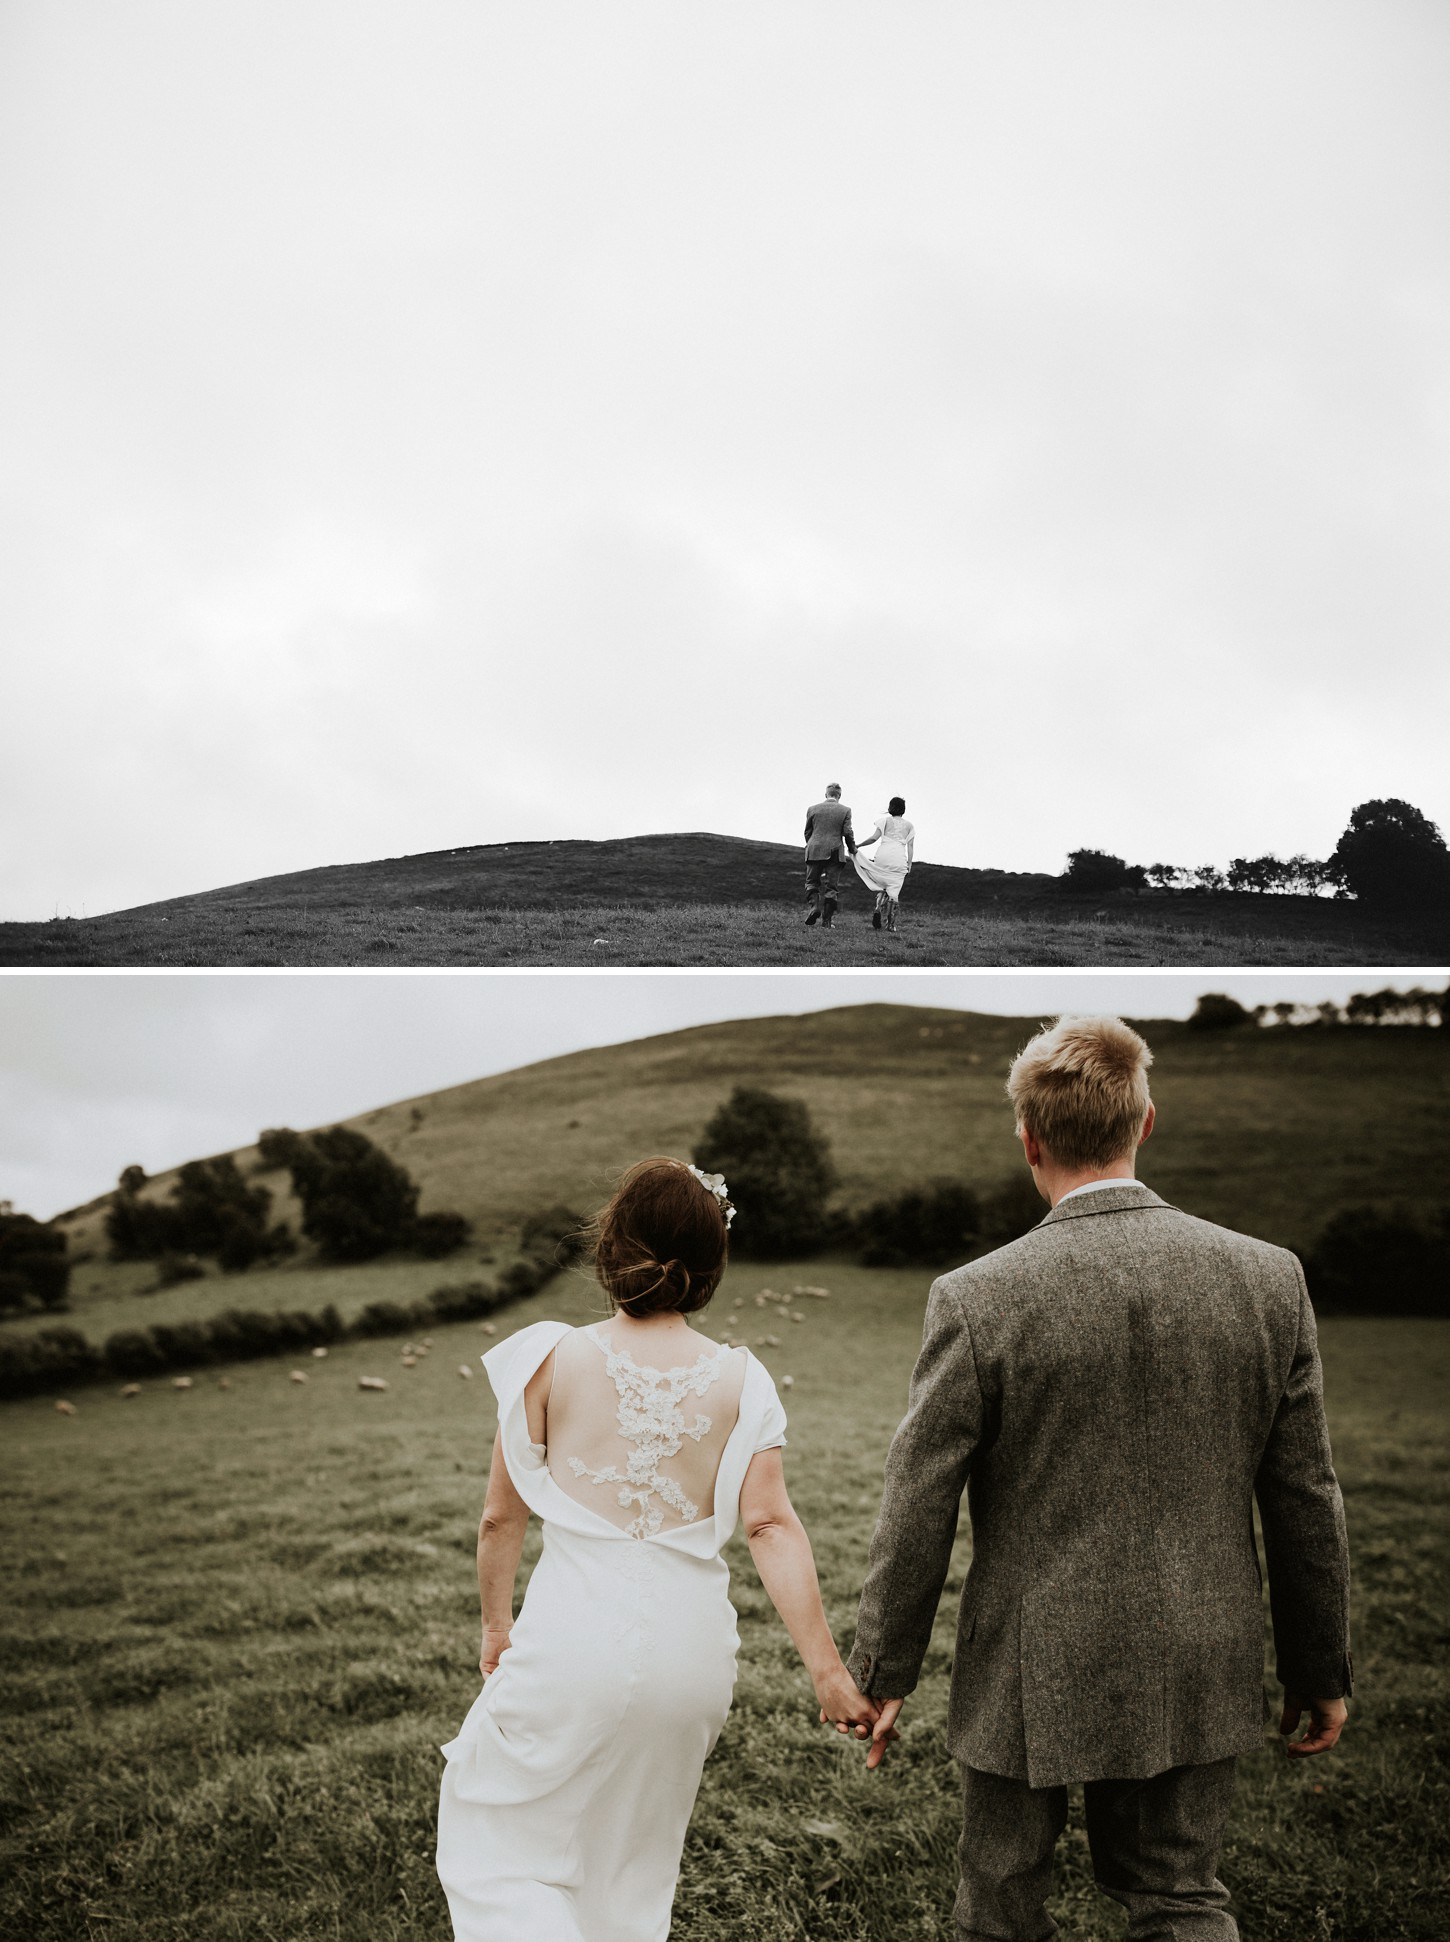 Dolau-Sheep-Farm-Wedding-Wales-United-Kingdom-047